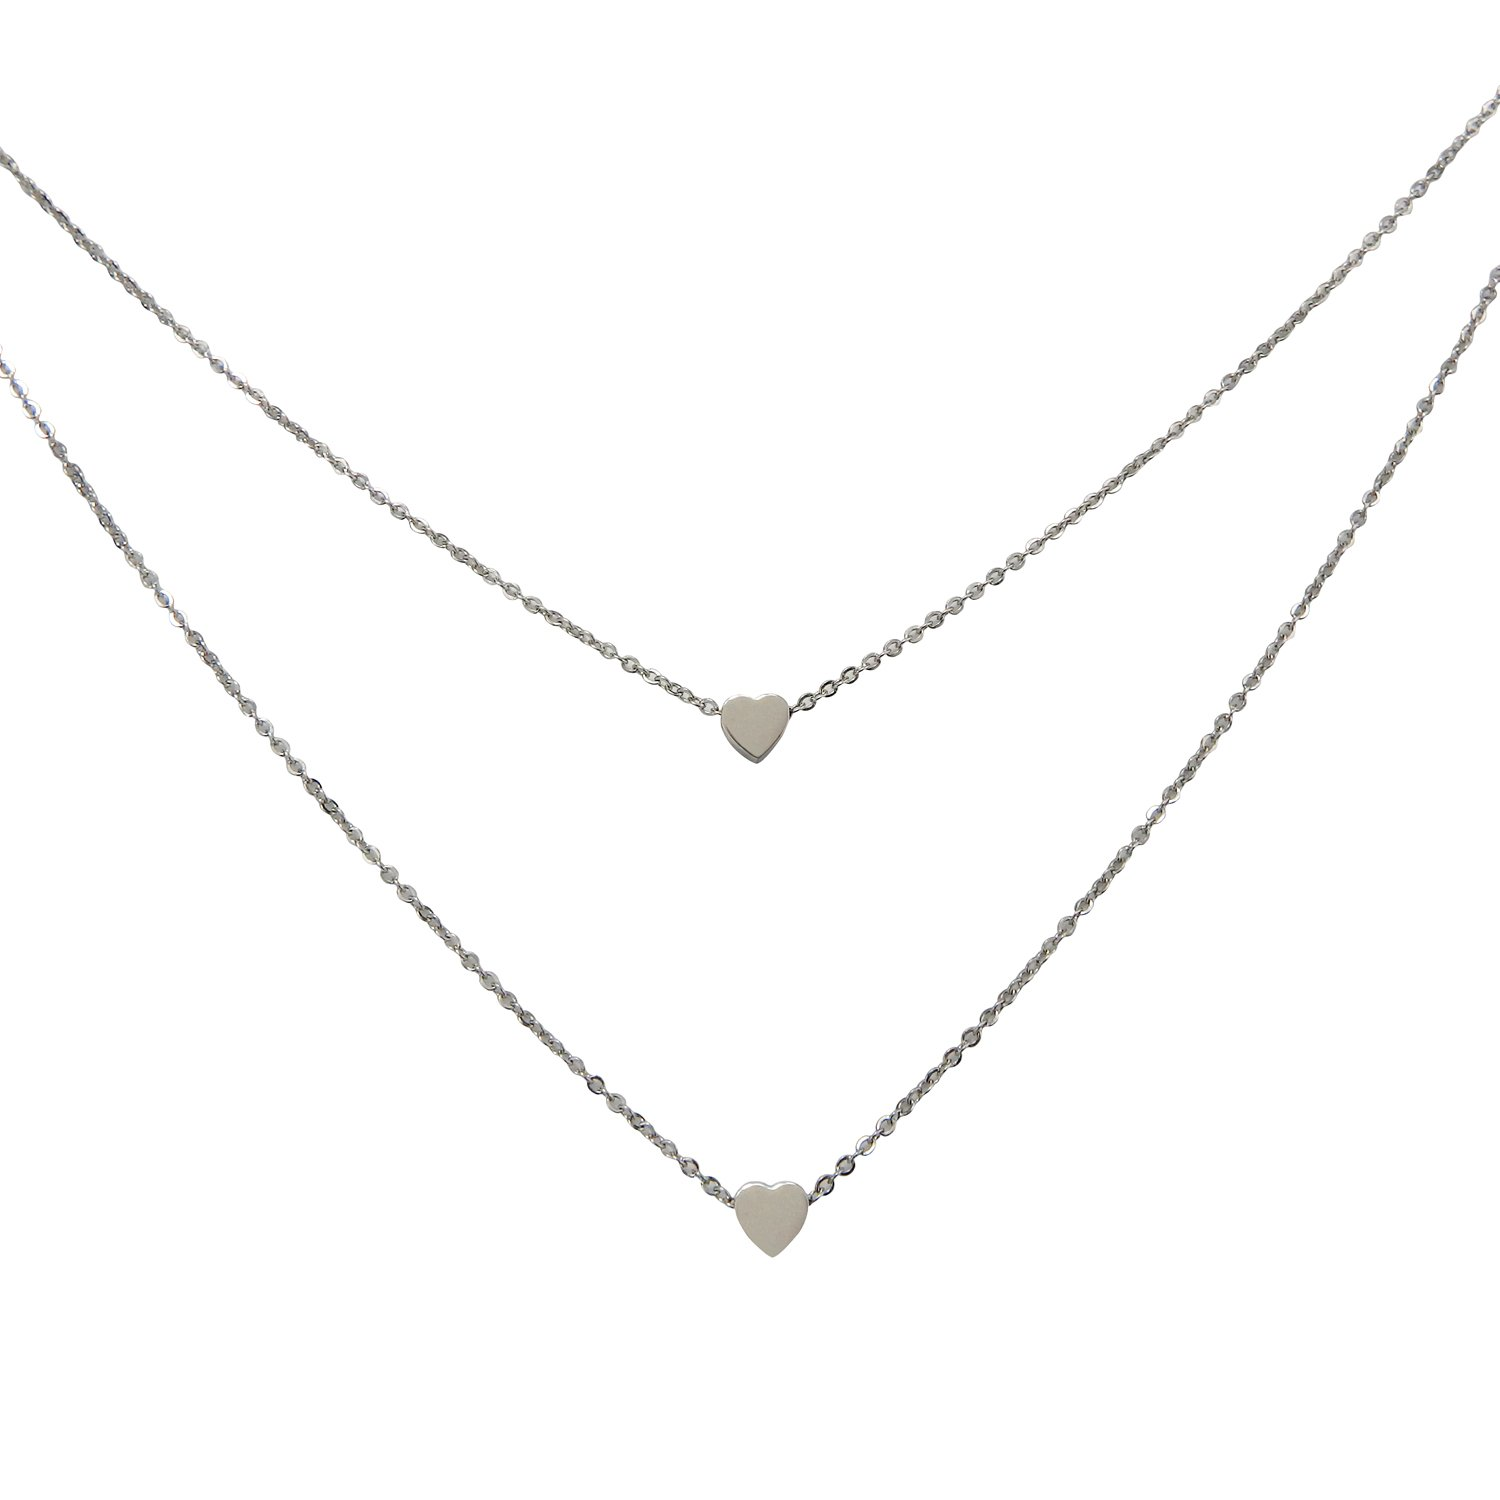 RareLove Simple Small Heart Stainless Steel Lariat Double Layered Necklace For Women Girls